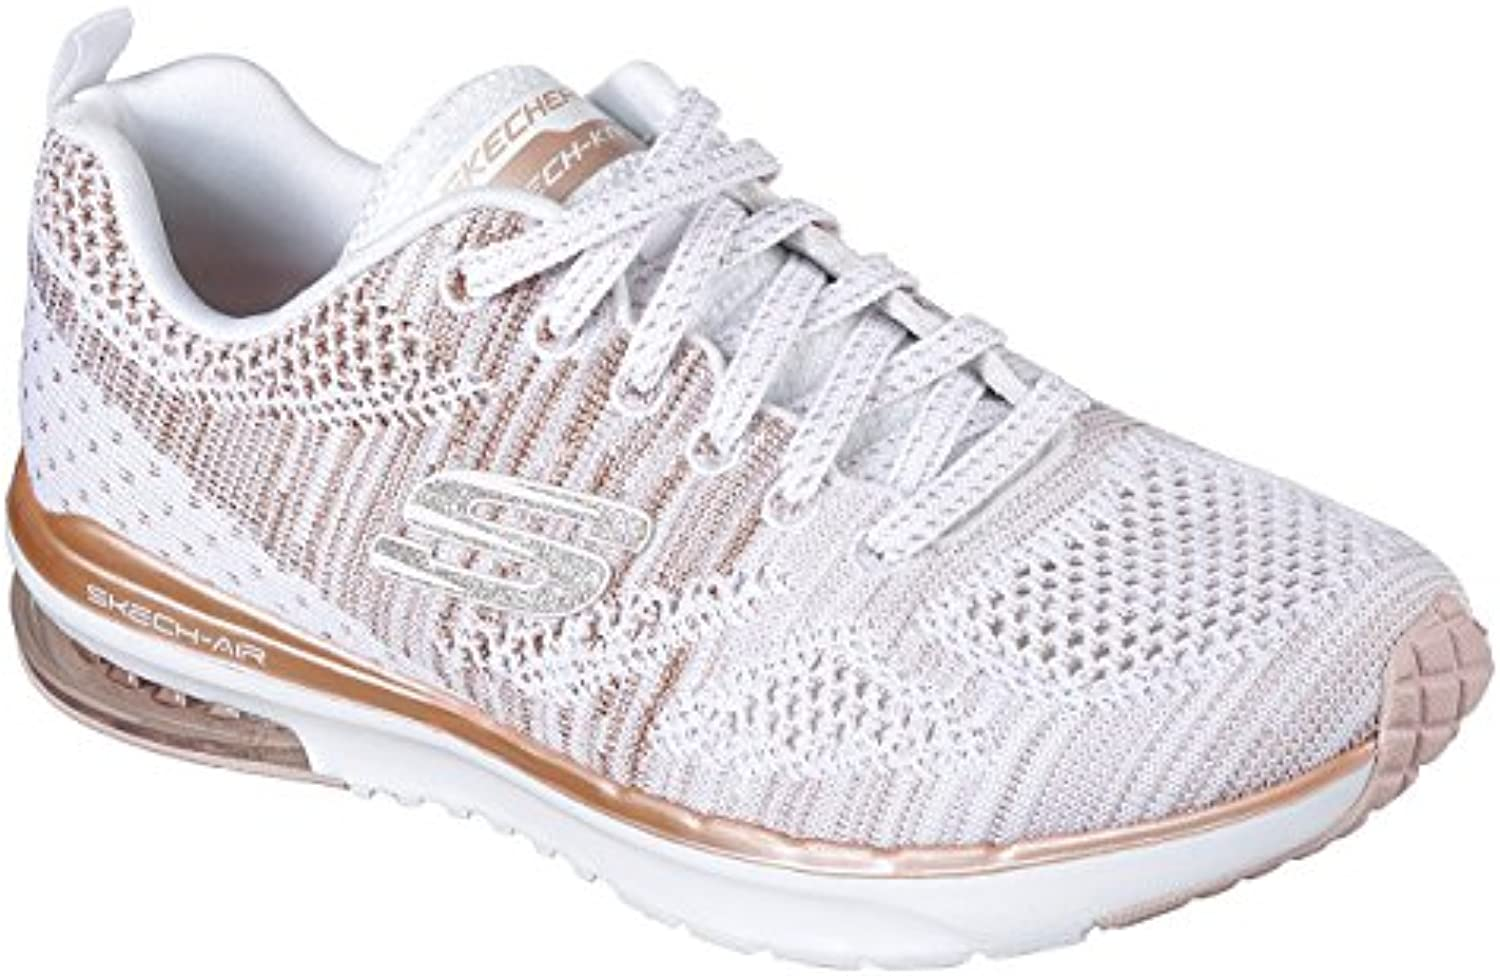 Skechers Skech-Air Infinity Stand Out 12114WTRG, Deportivas